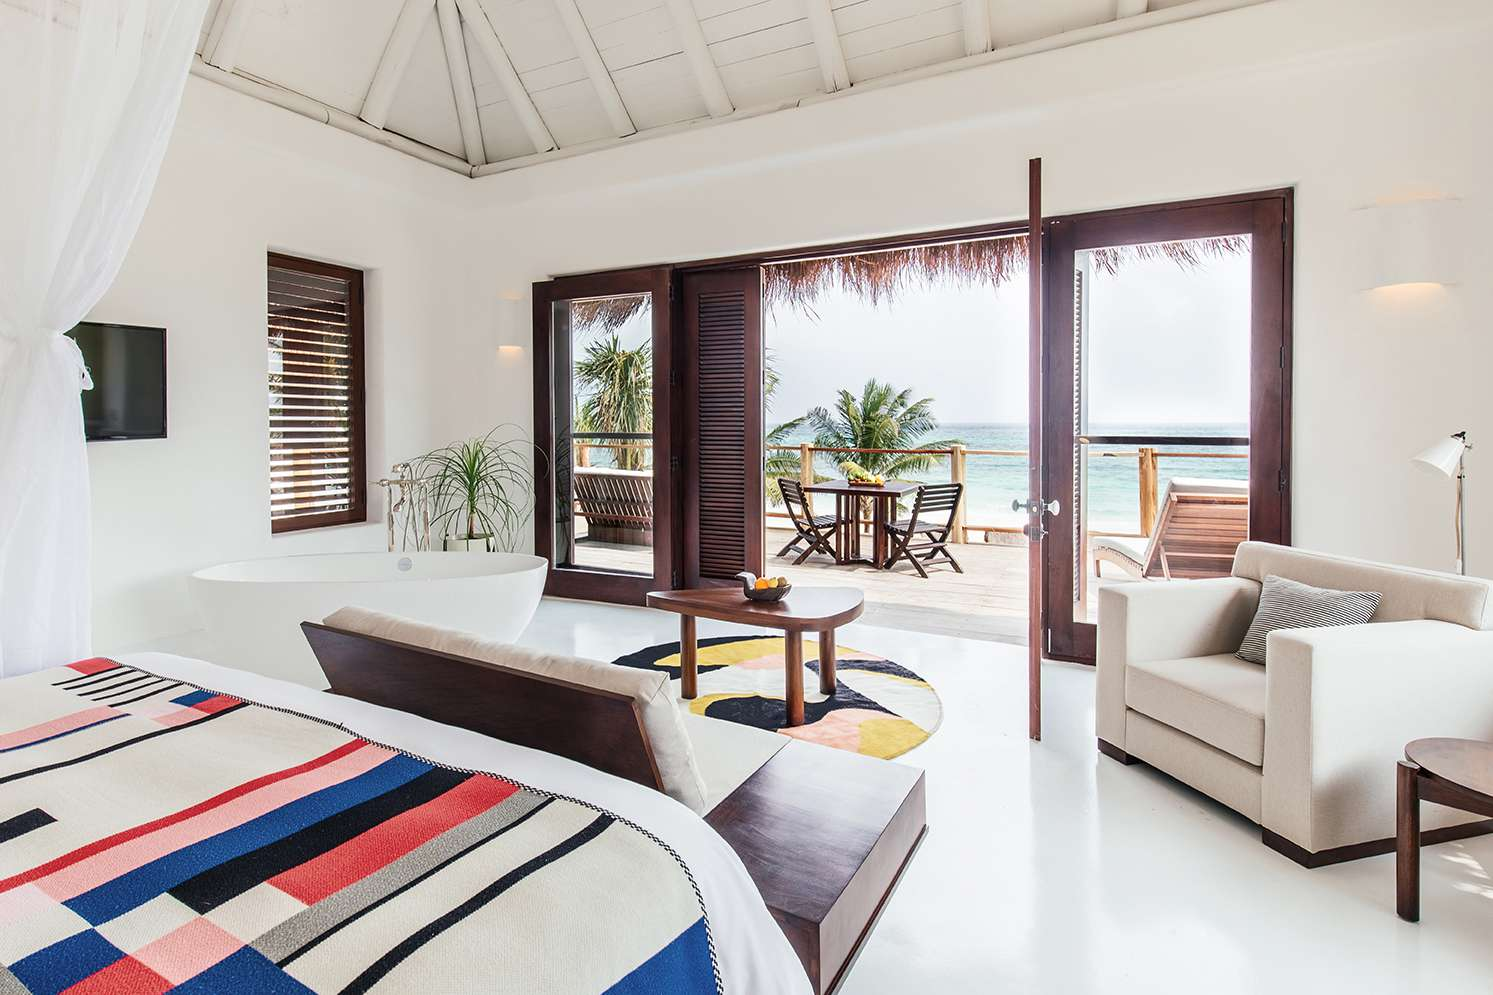 The new beach suites at Hotel Esencia, on Riviera Maya, Mexico.